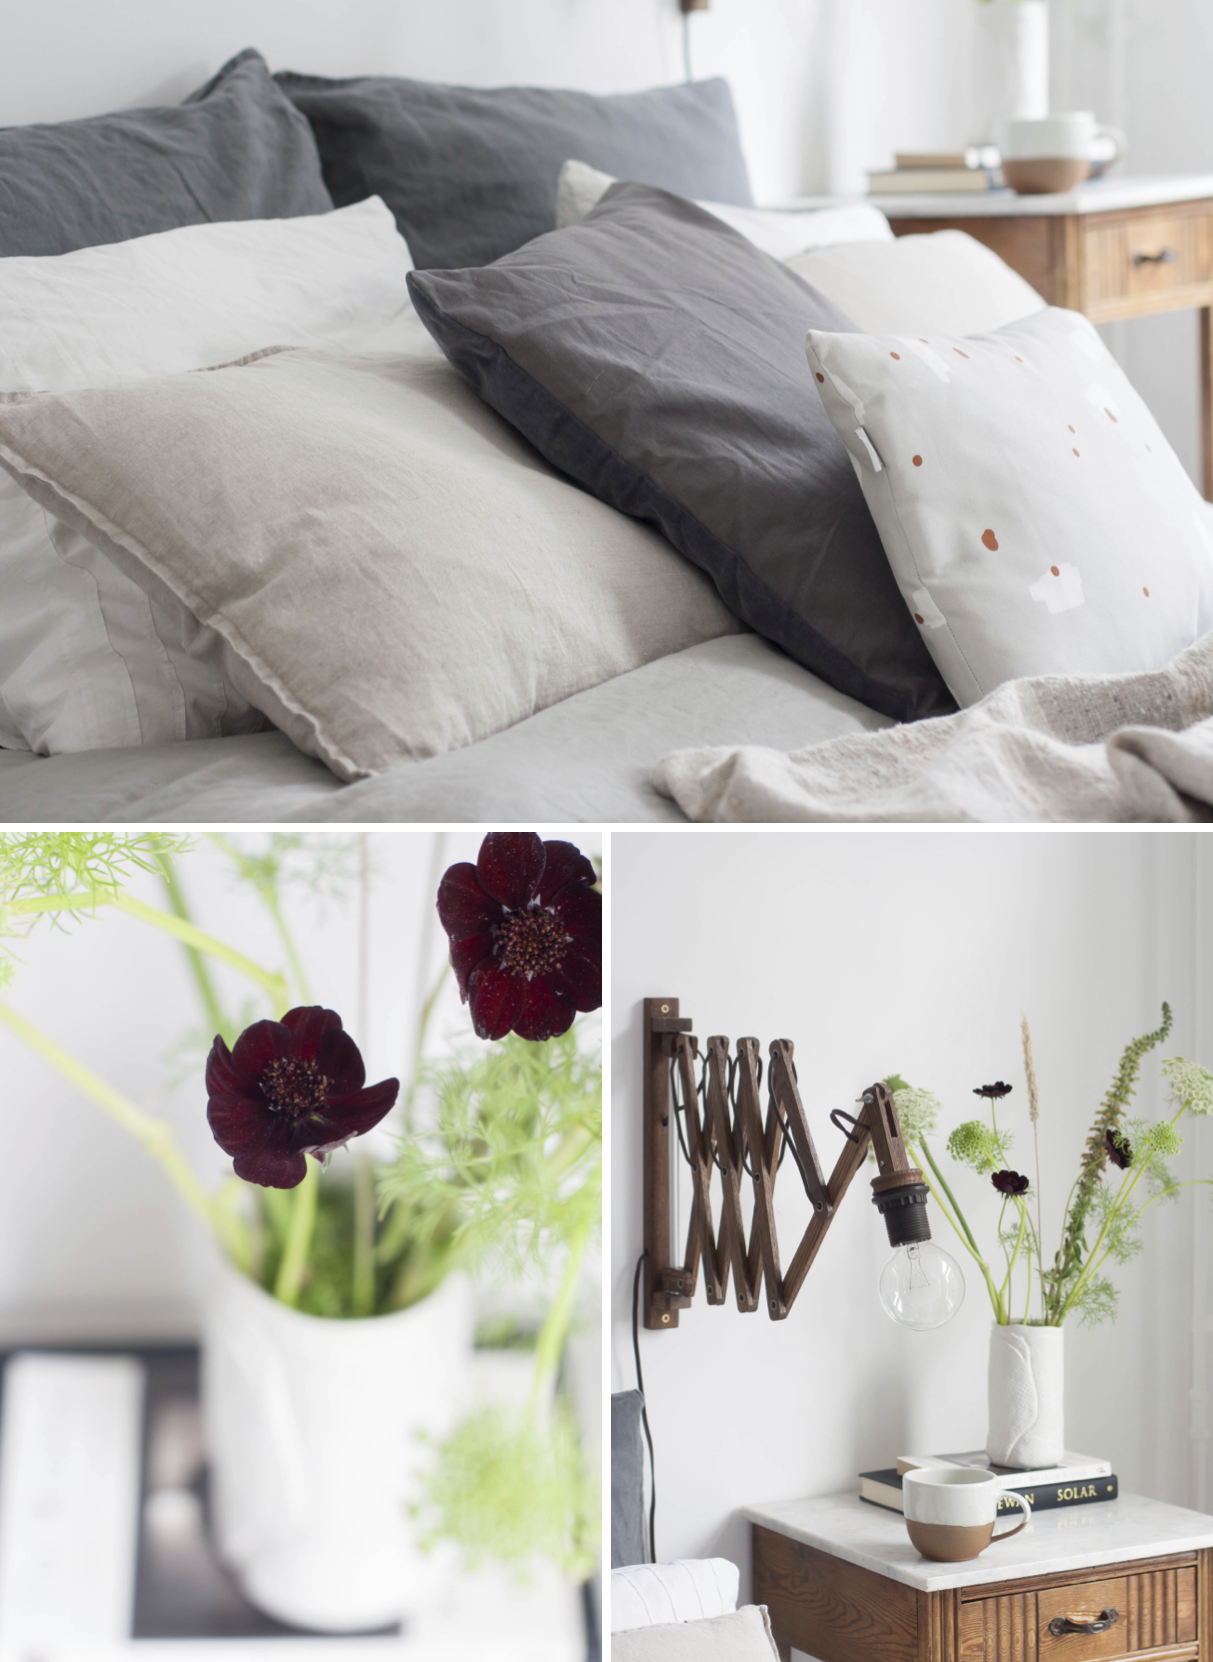 Bedroom Makeover Before And After bedroom makeover: before & after! - avenue lifestyle avenue lifestyle